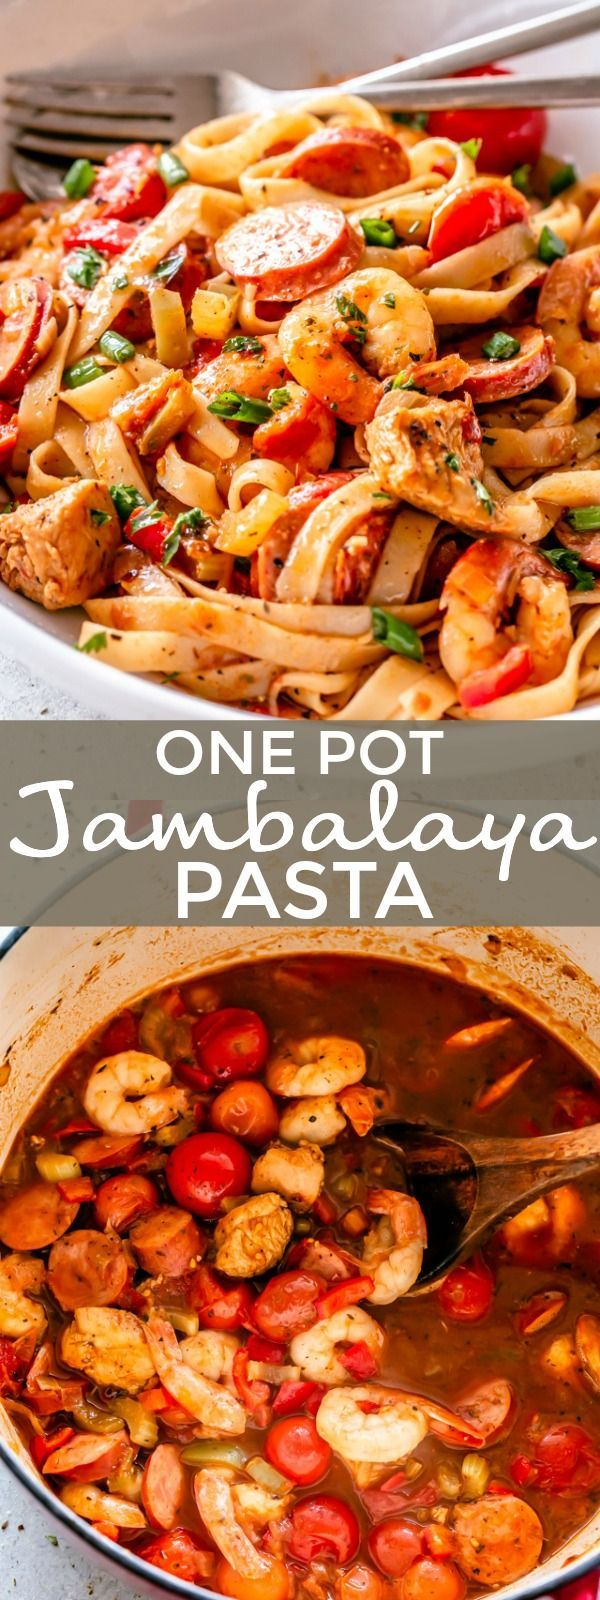 Easy One Pot One Pot Jambalaya Pasta Recipe